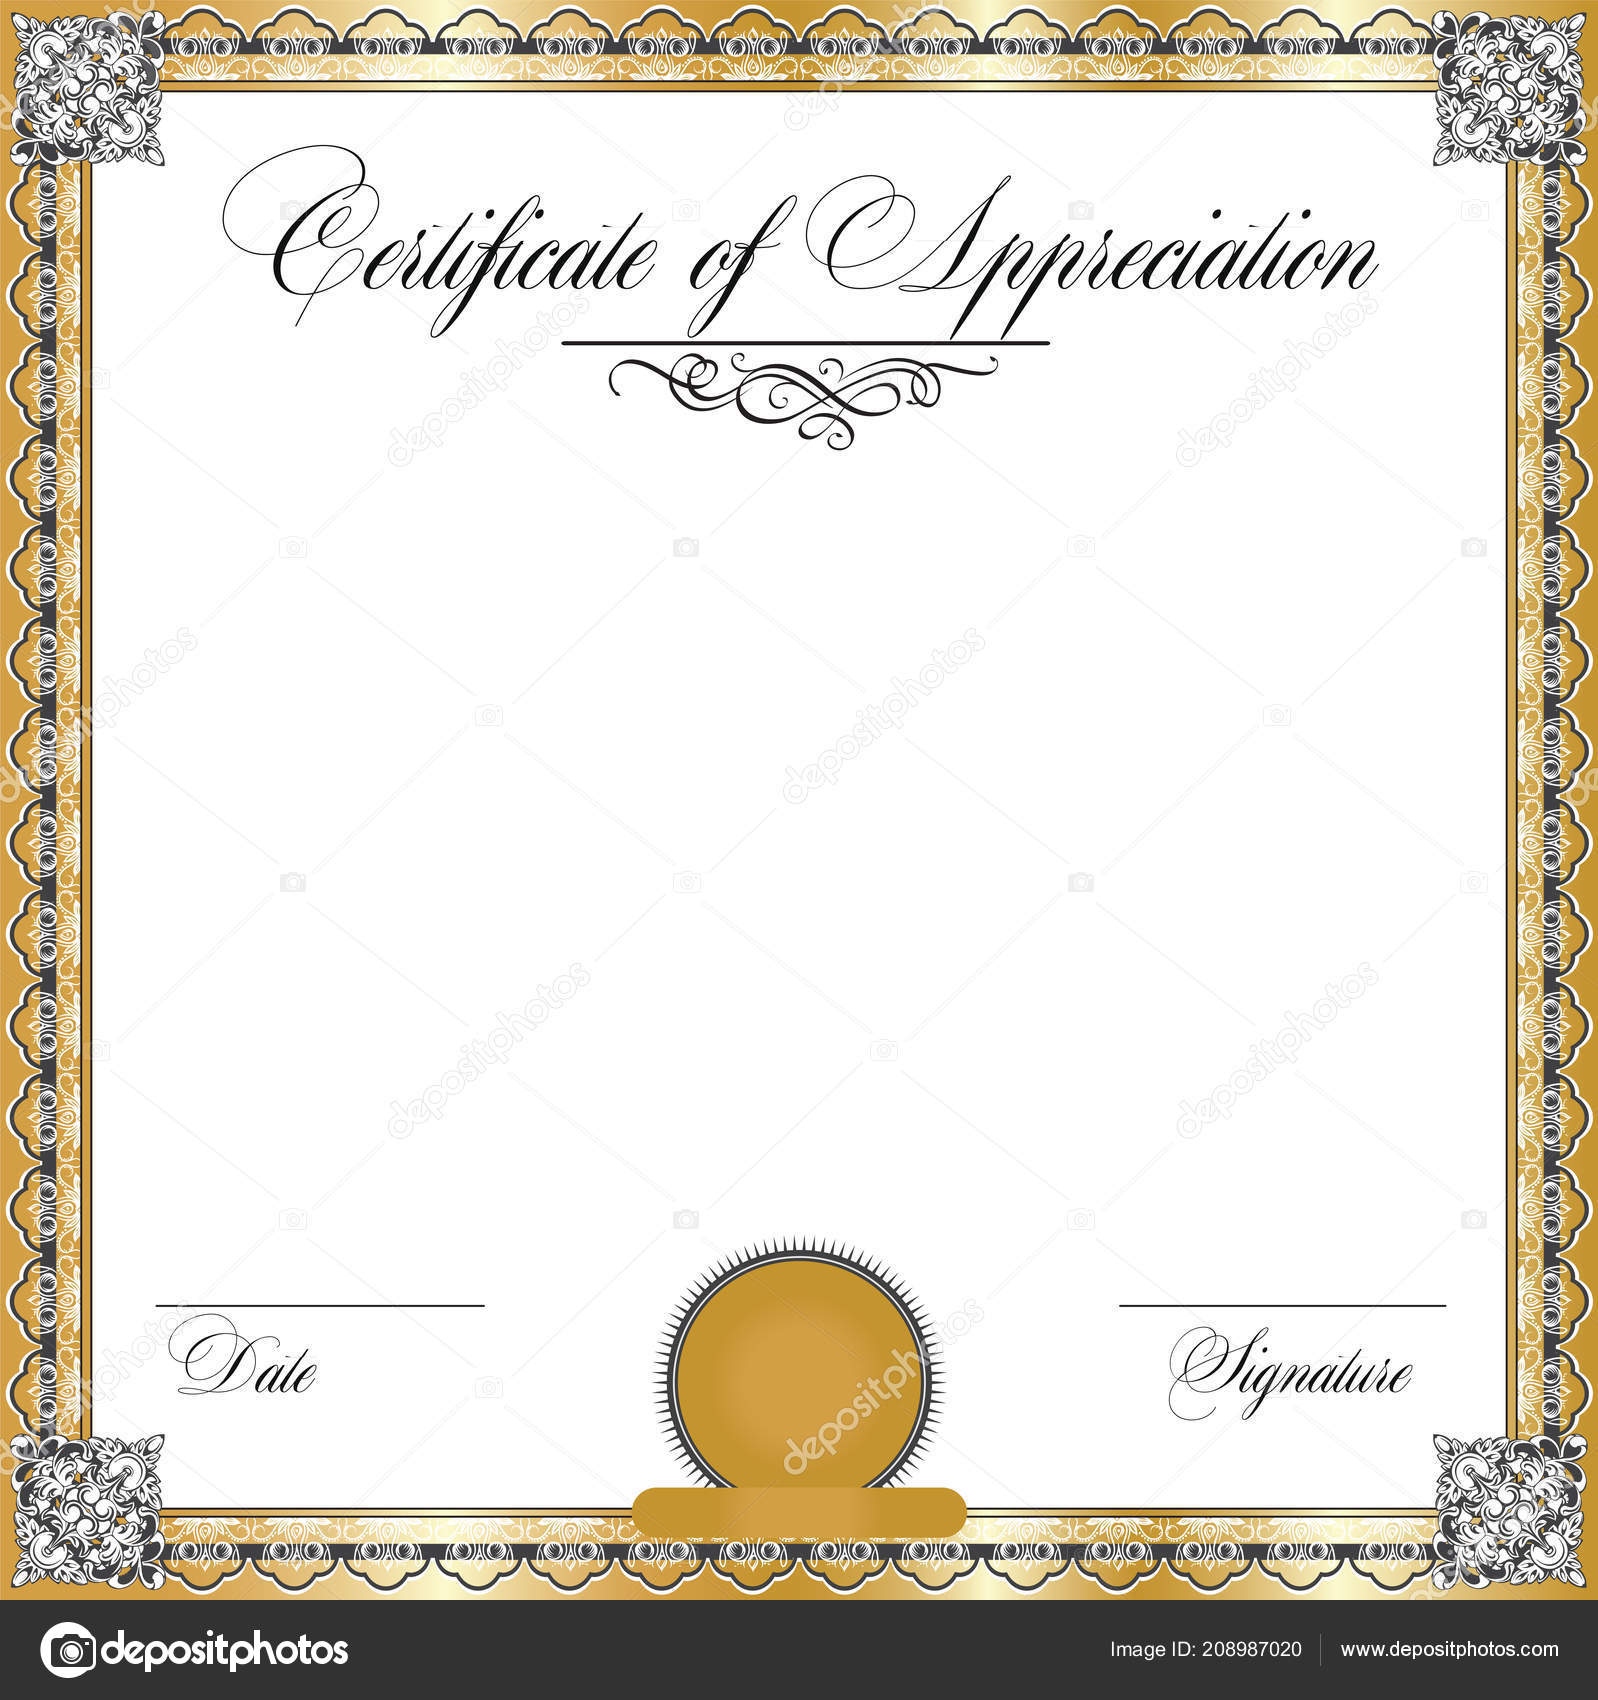 vintage certificate appreciation ornate elegant retro abstract